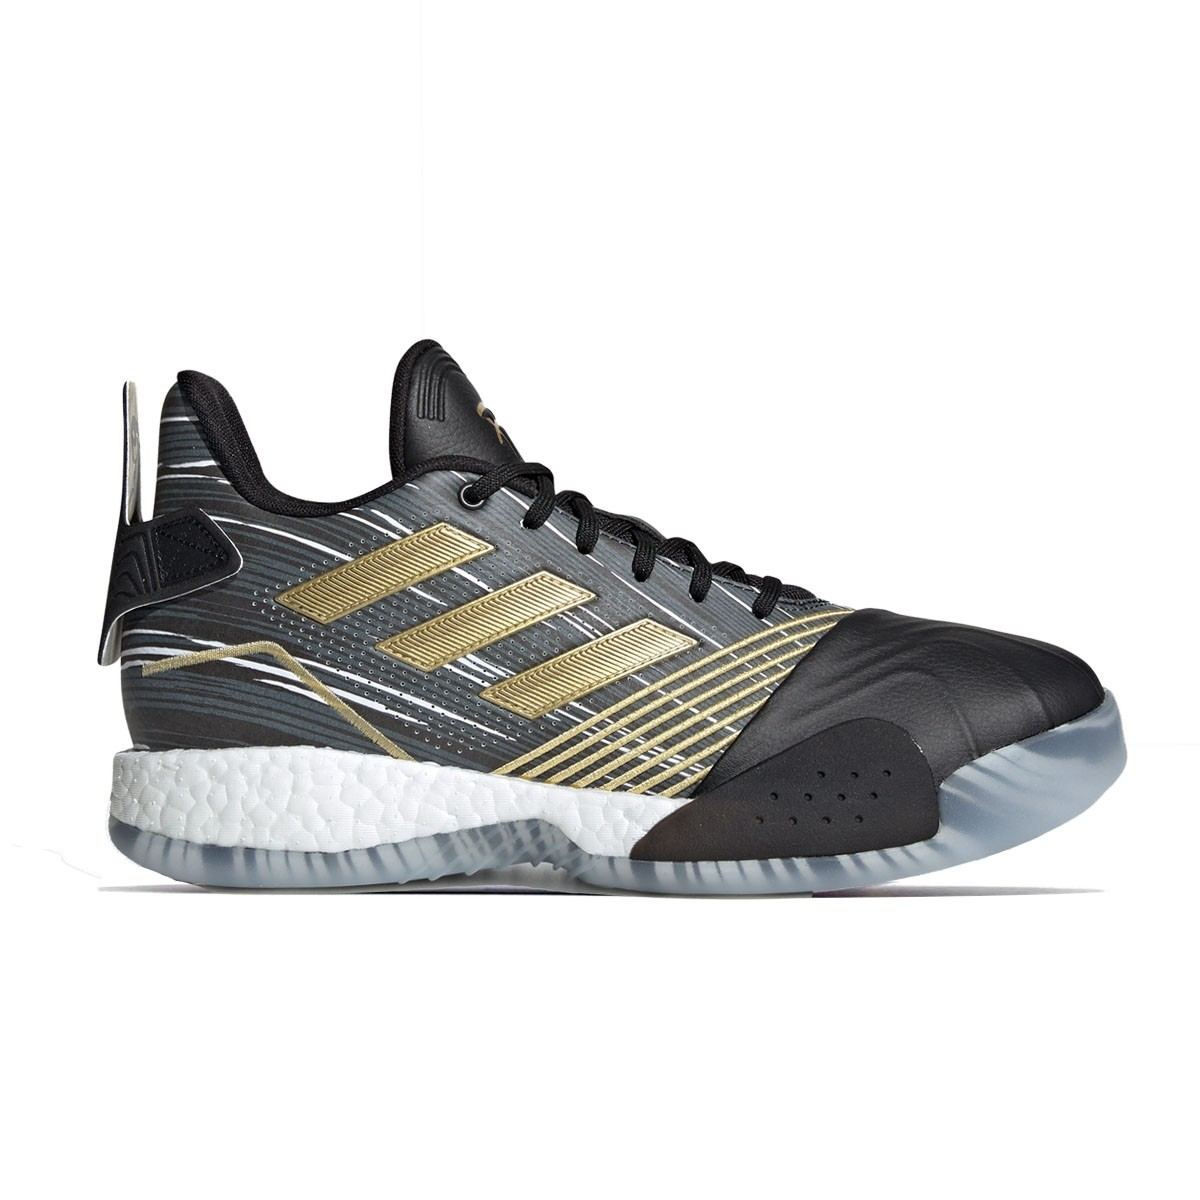 ADIDAS T-Mac Millennium 'Black Gold'